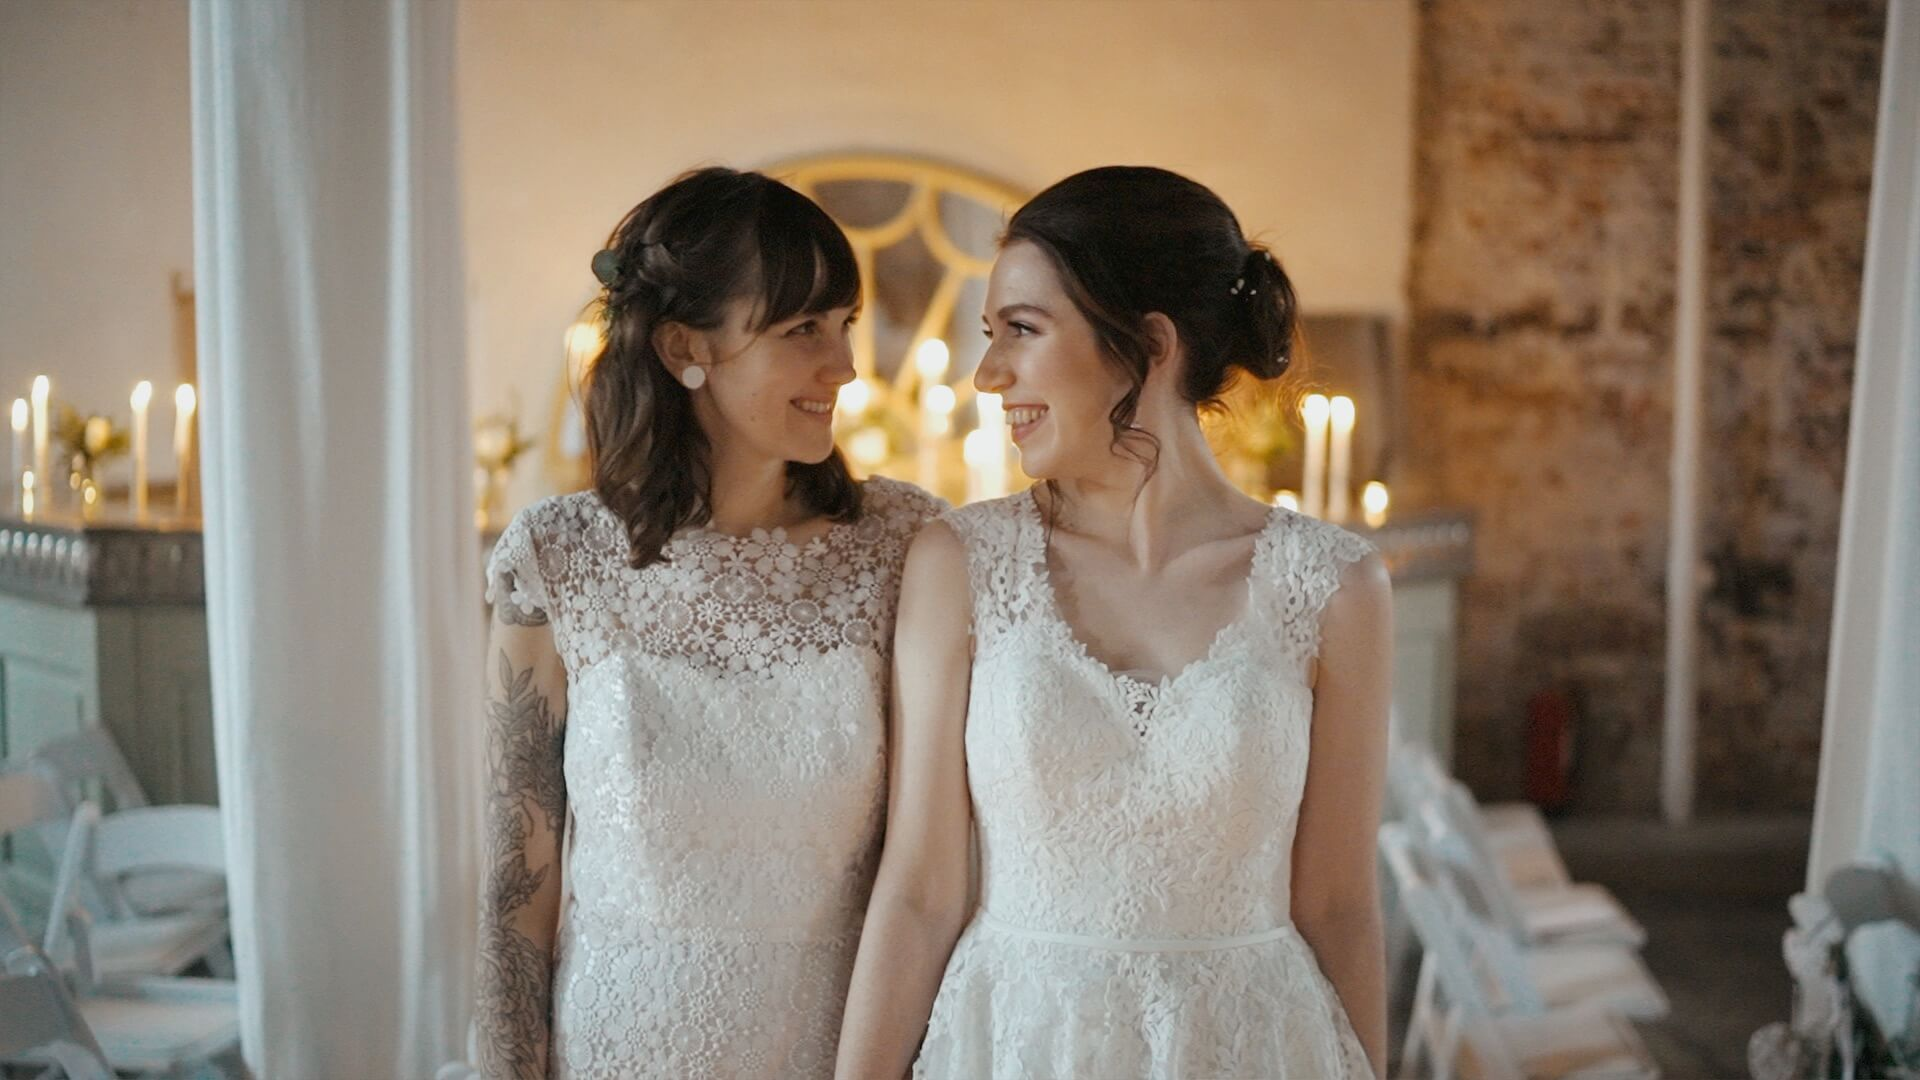 Claire & Sophie, Wedding Video at The Millhouse